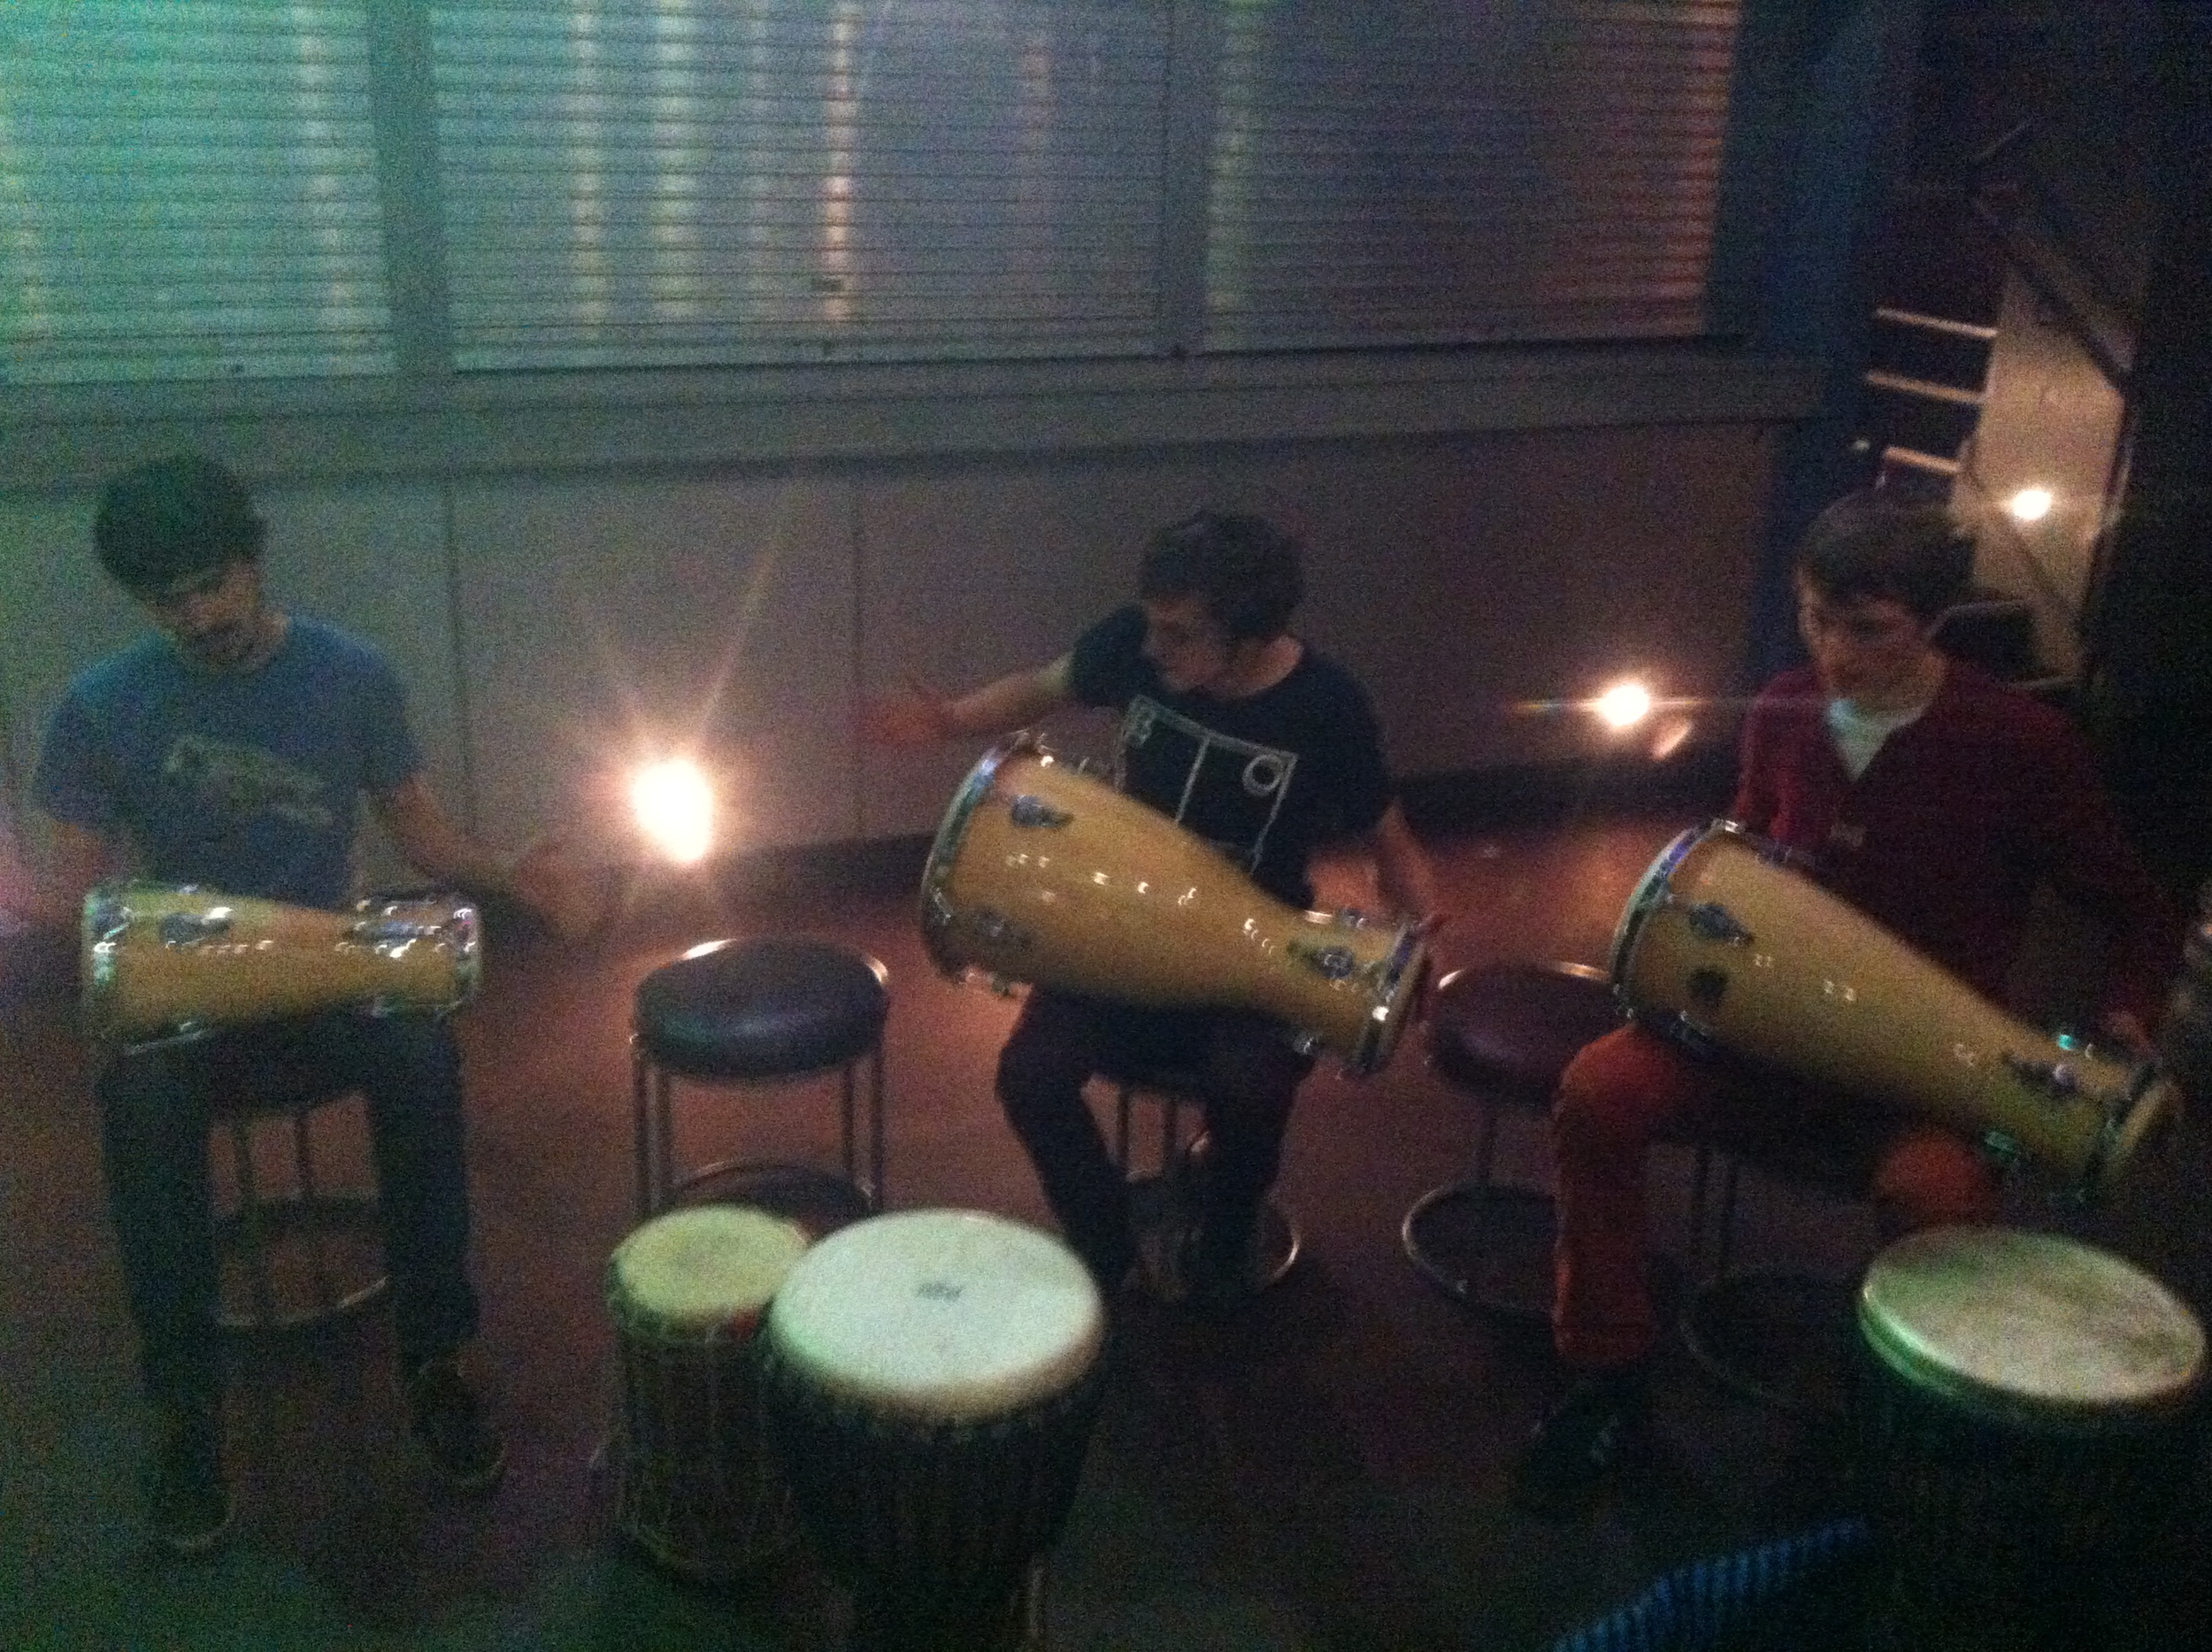 Bata time! Intermdiate/improvers 6 week course leads to looking at Afro-Cuban and Afro-Brazilian styles, and a healthy blast of djembe rhythms and skills, but this was all about exploring a 6/8 fusion...some great players that year ;-)